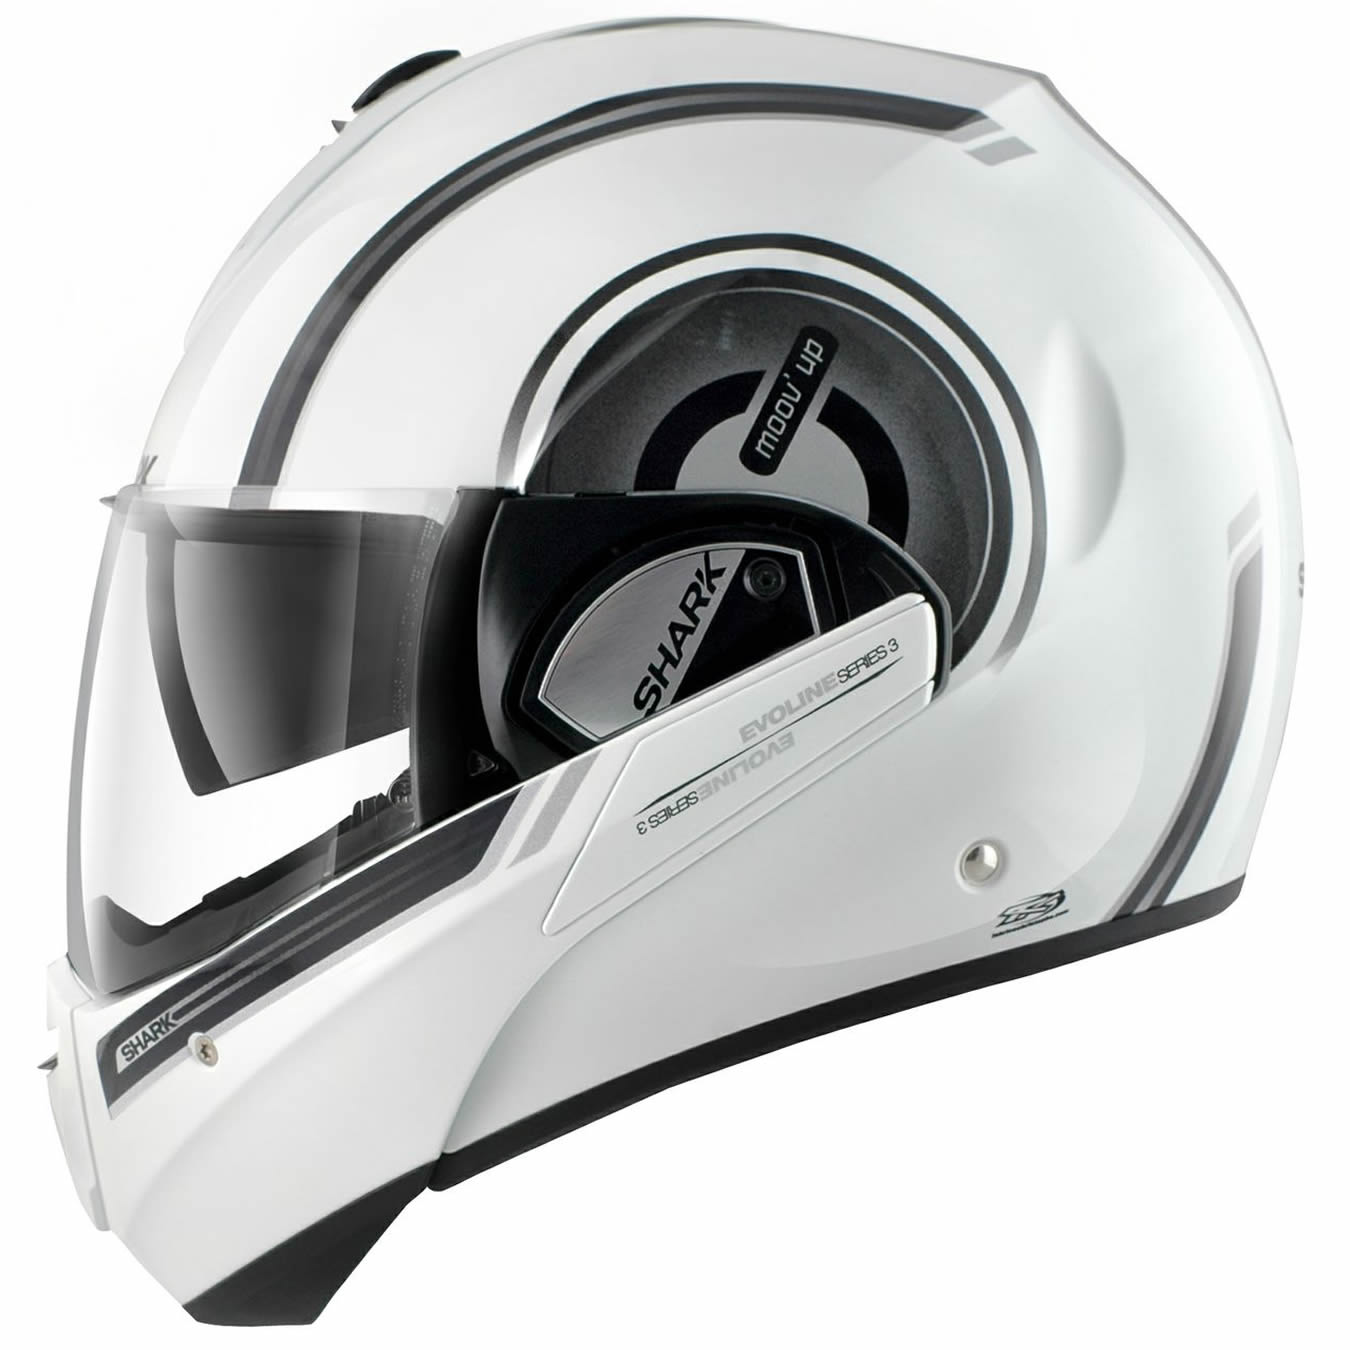 shark evoline series 3 moov up flip up front full open face motorcycle helmet ebay. Black Bedroom Furniture Sets. Home Design Ideas